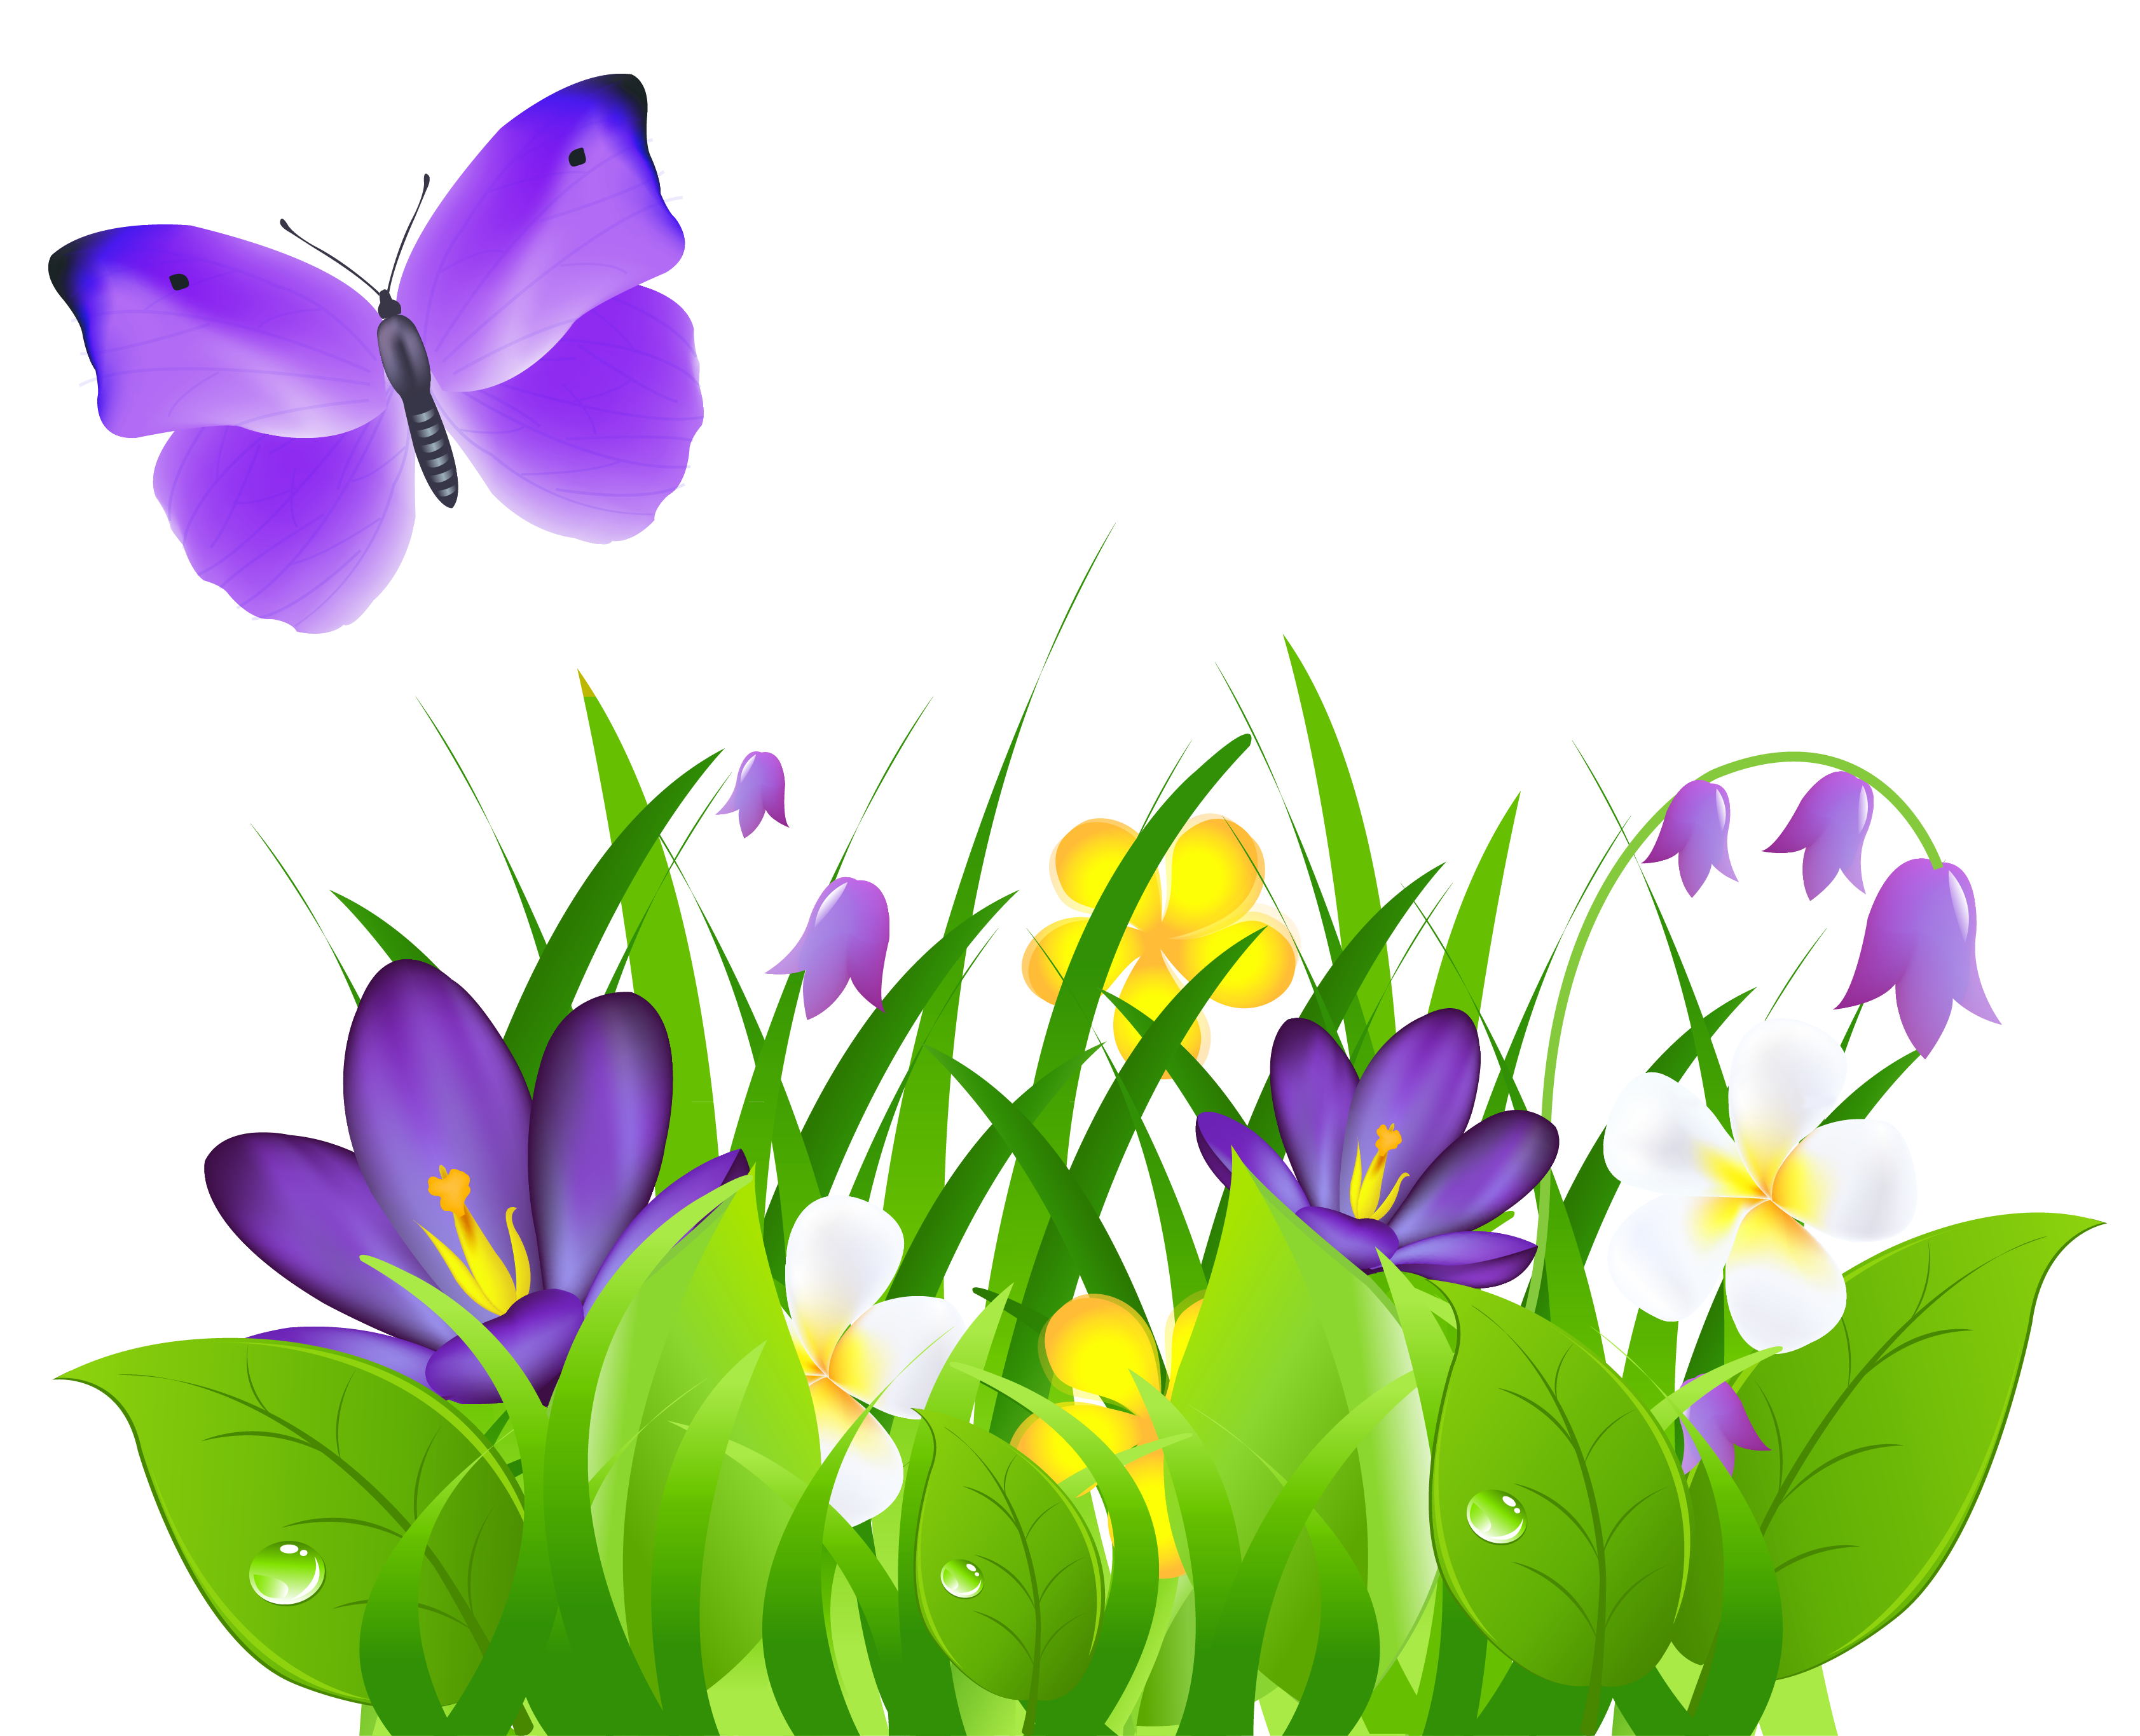 Butterfly on flower png. Purple flowers grass and